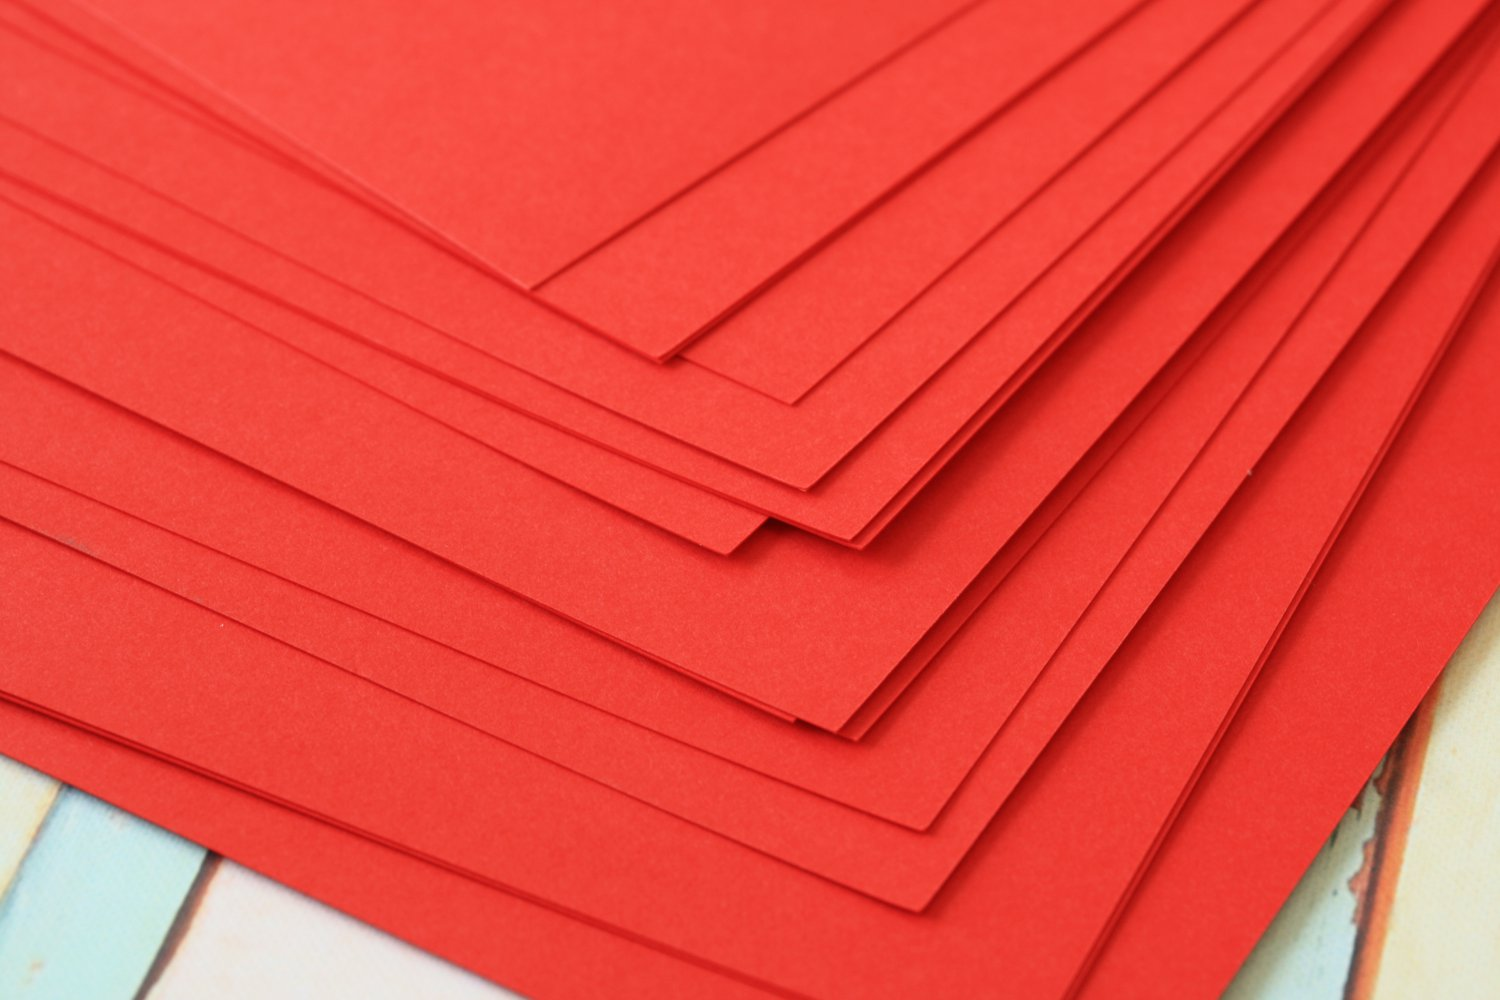 Apple Red cardstock 260gsm 95lbs cover A4 size